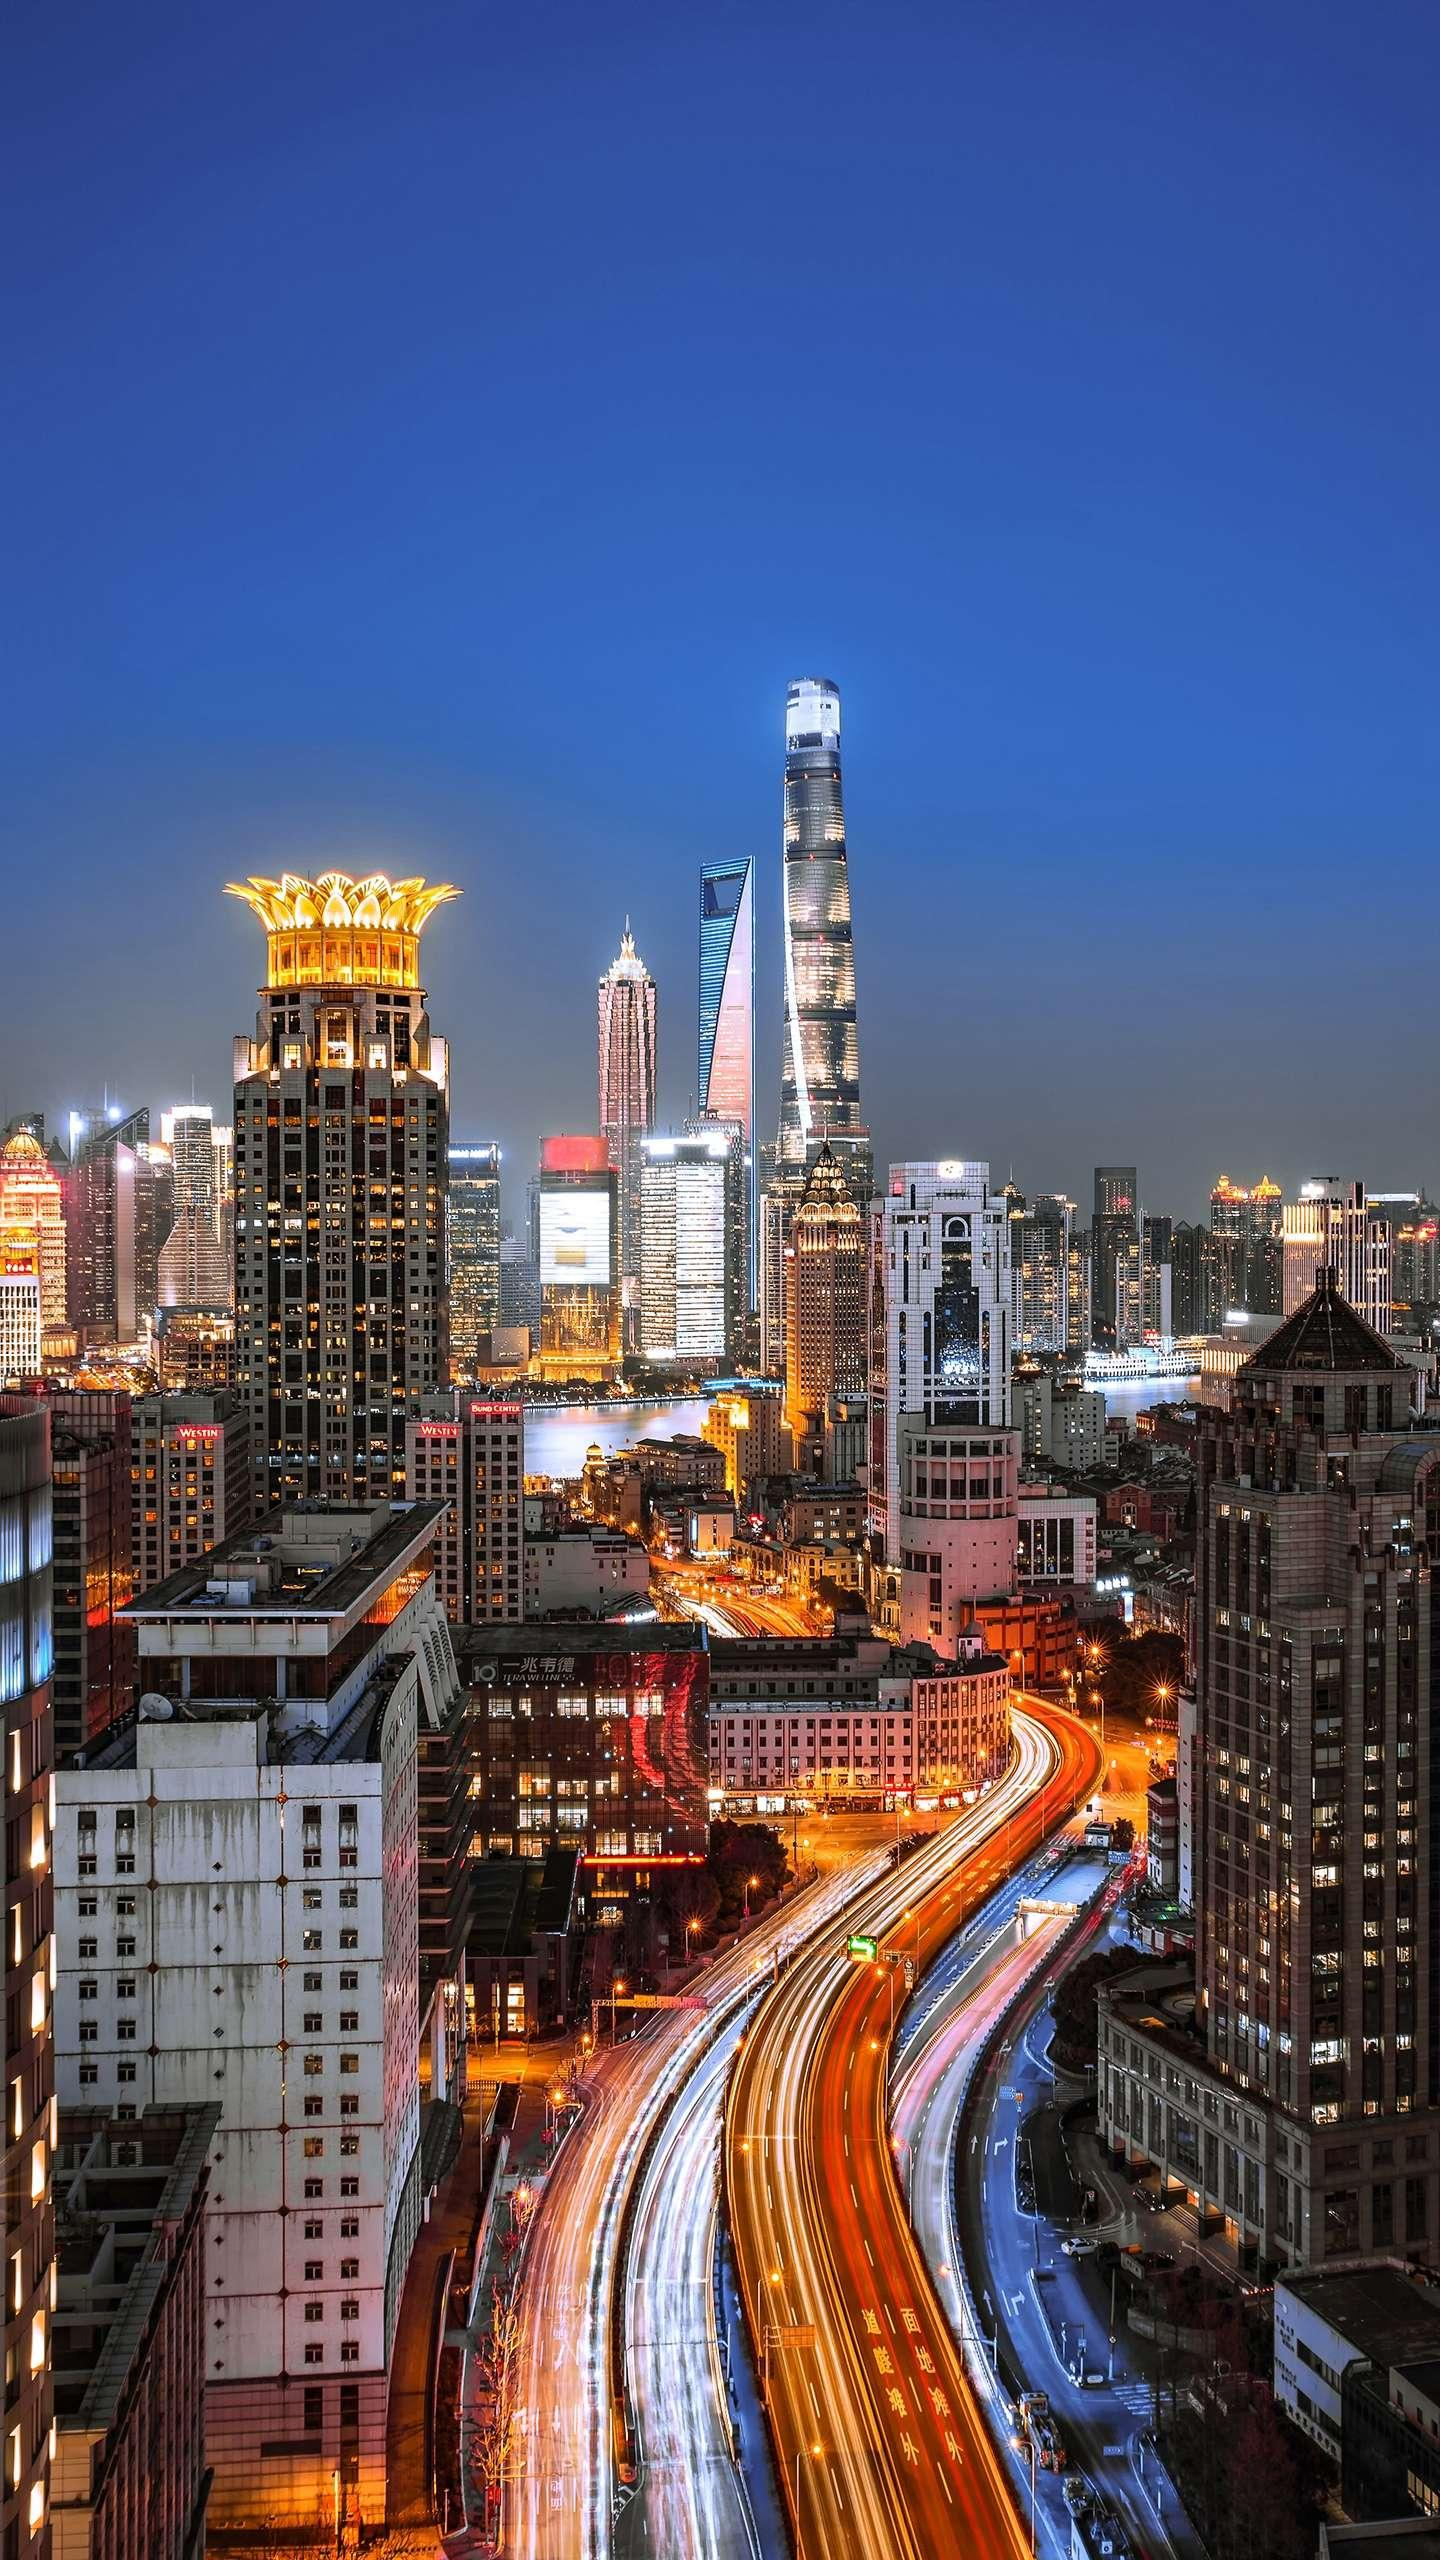 Shanghai night view. Shanghai is a city with the most magical temperament, not only modern modern fashion, but also the dignified elegance of traditional ancient architecture.